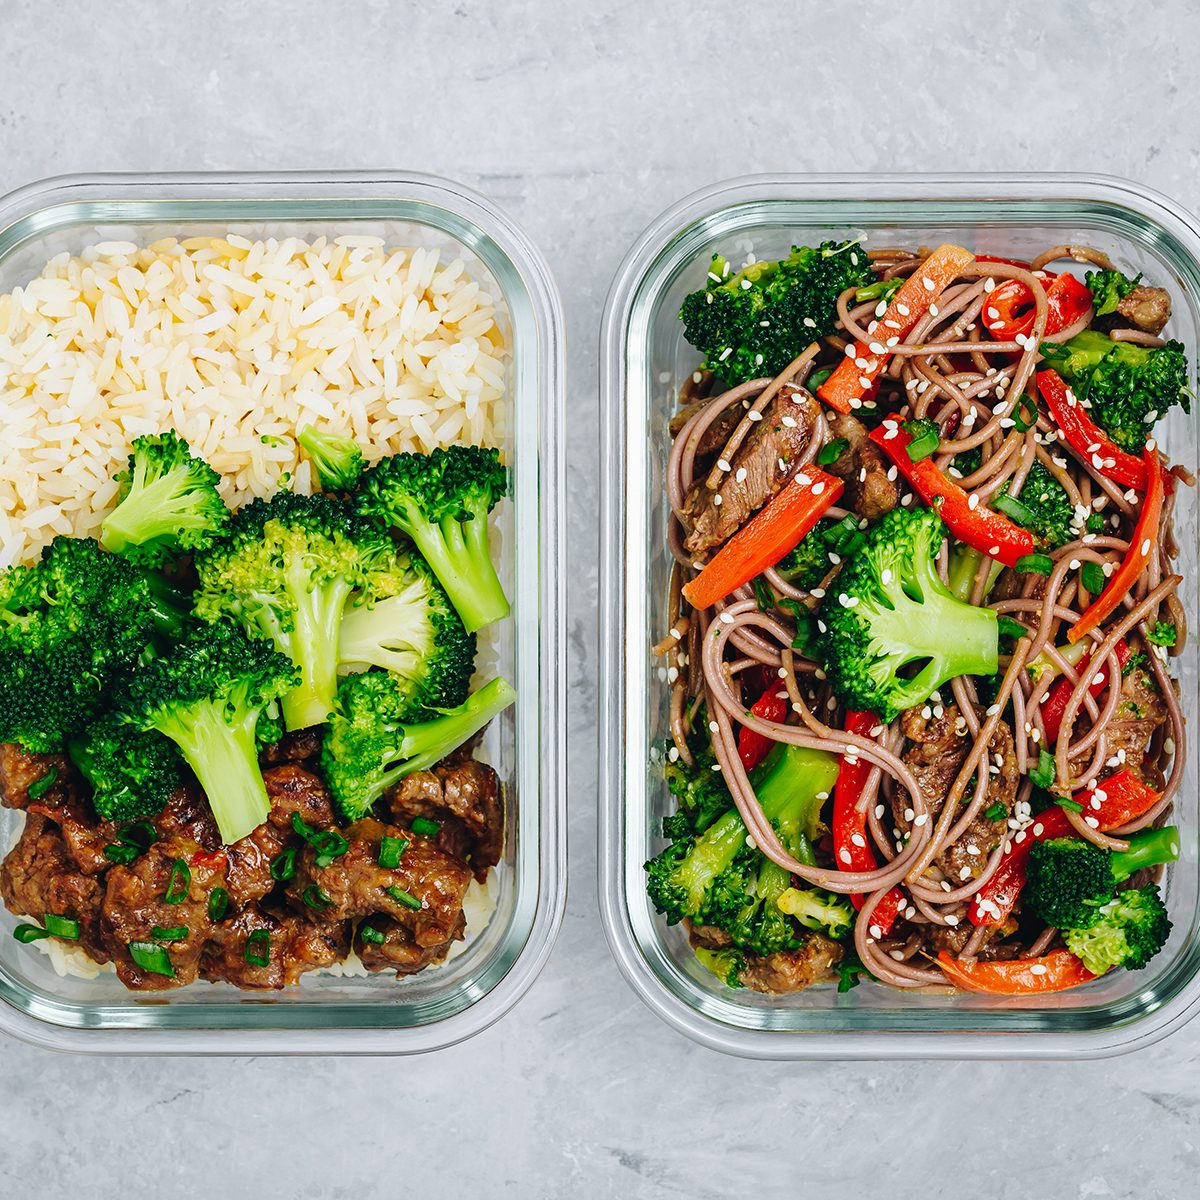 Two takeout containers of food